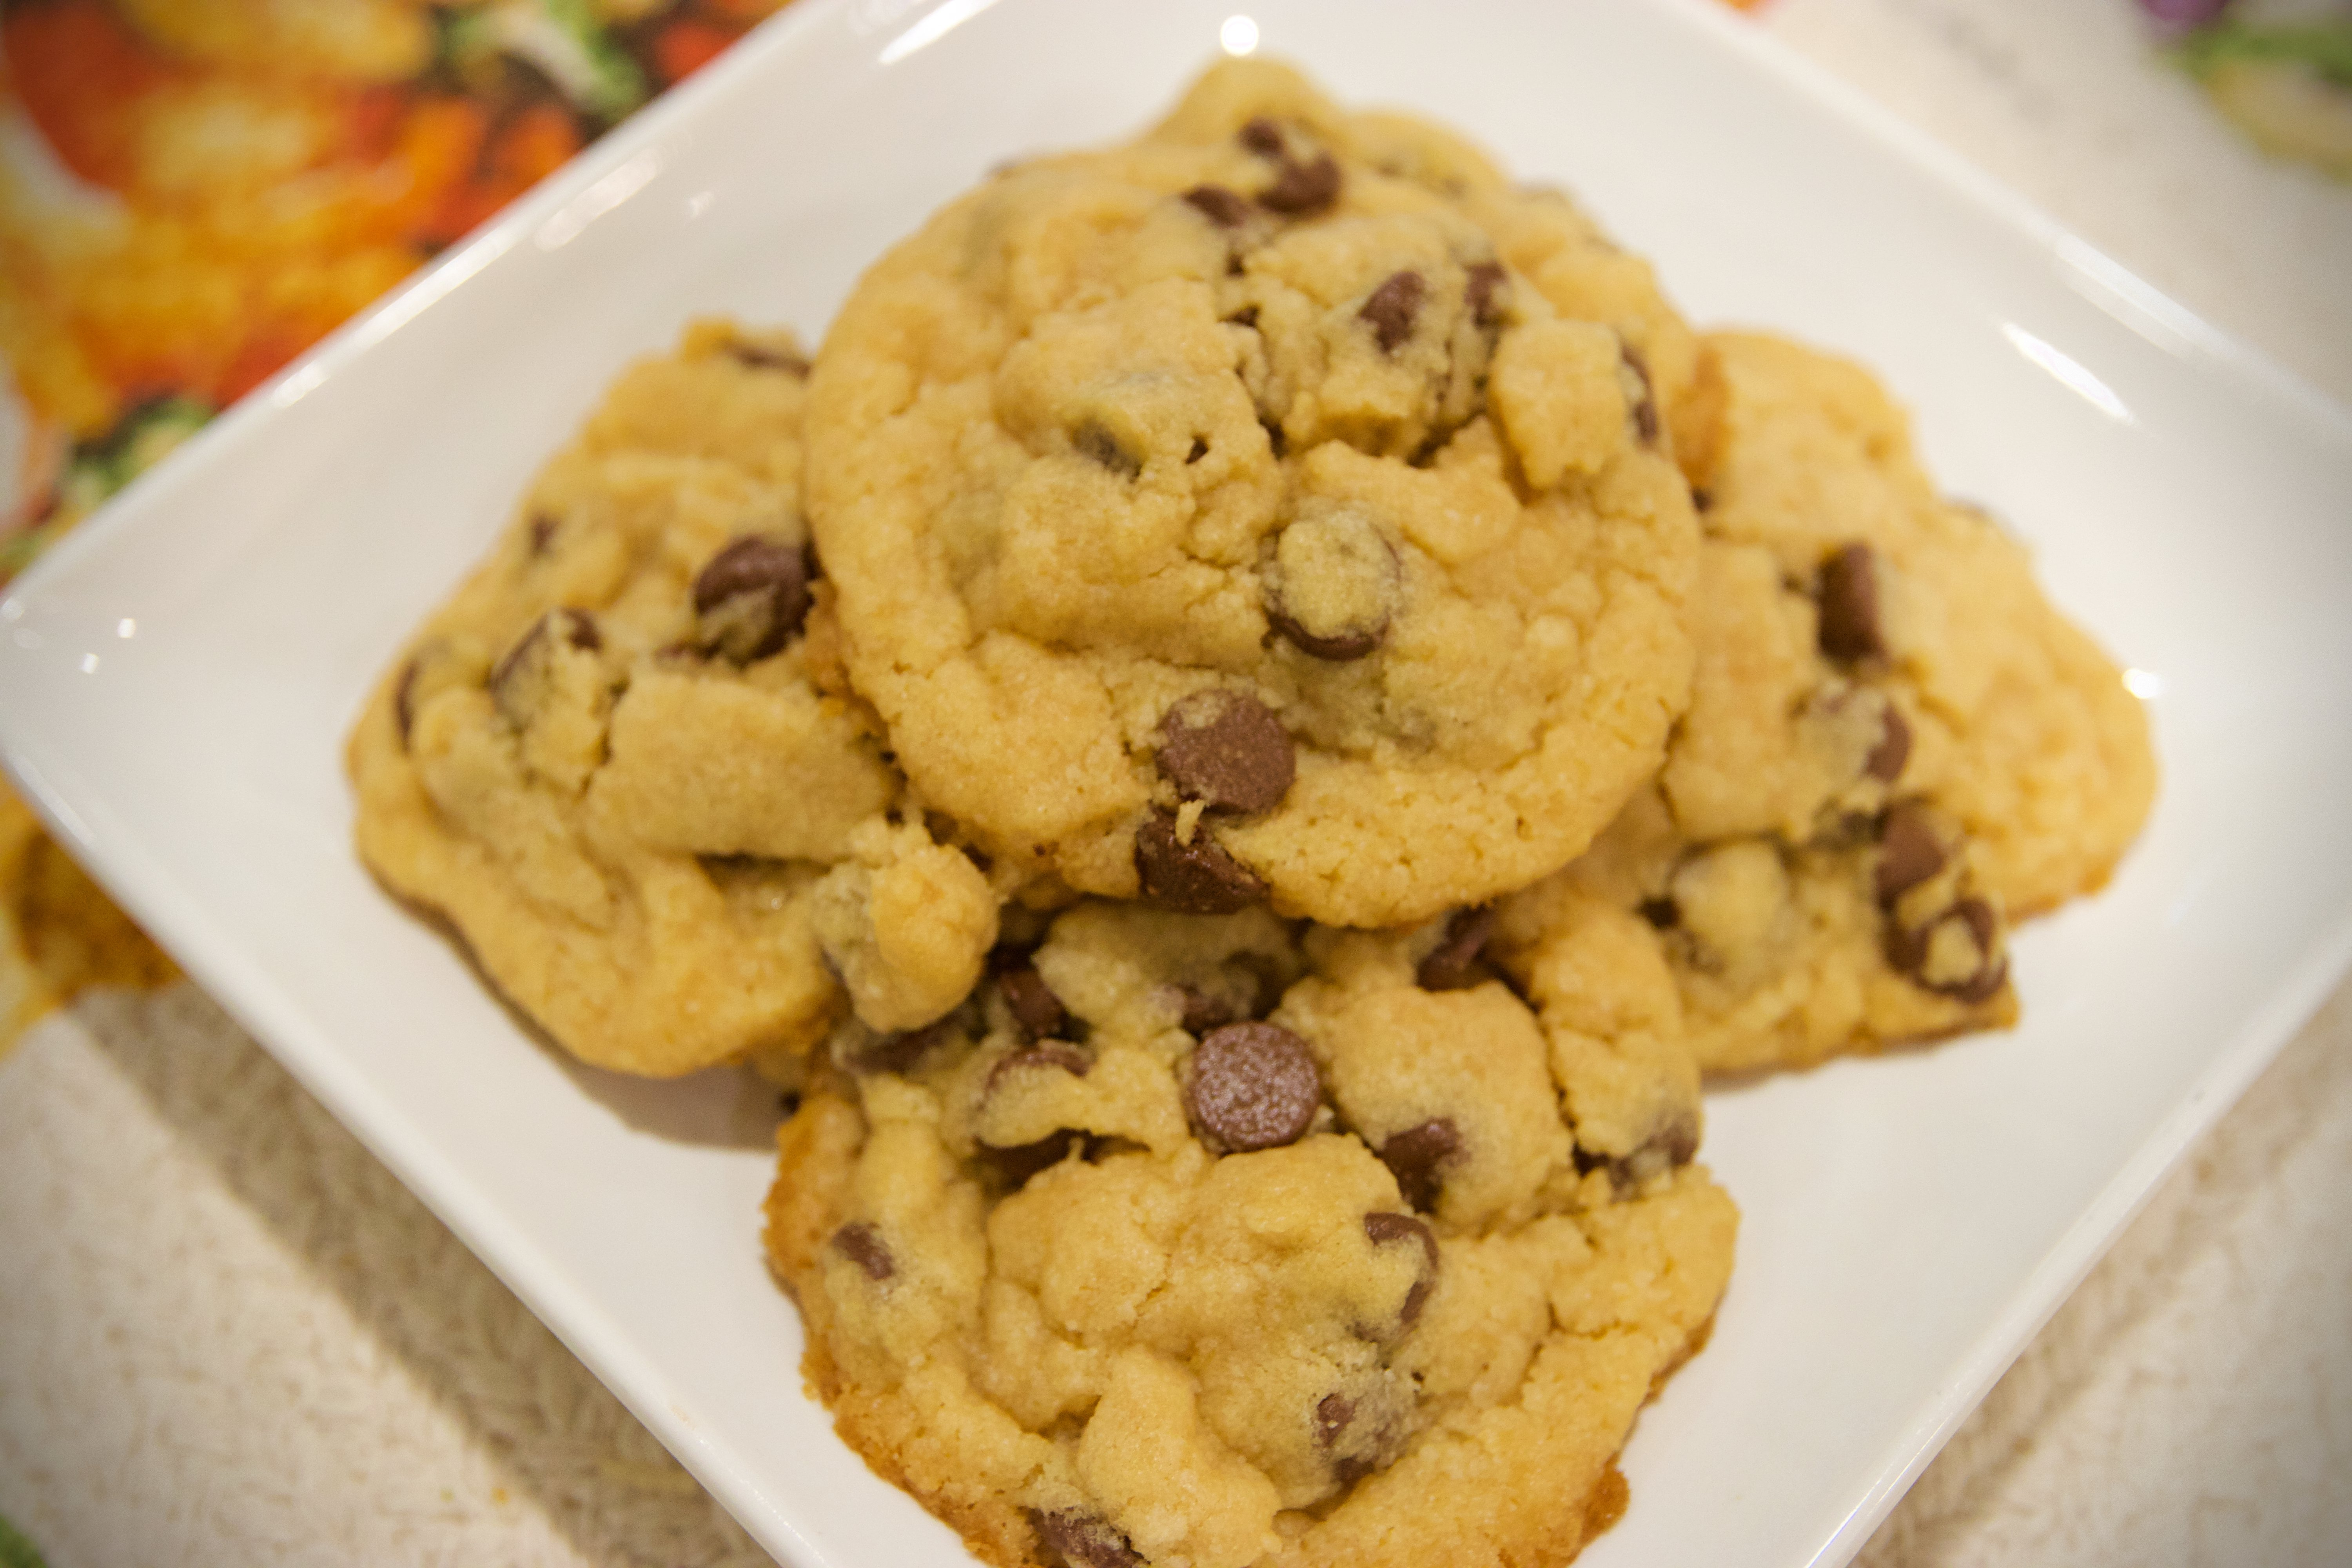 Picture of baked chocolate chip cookies on plate.